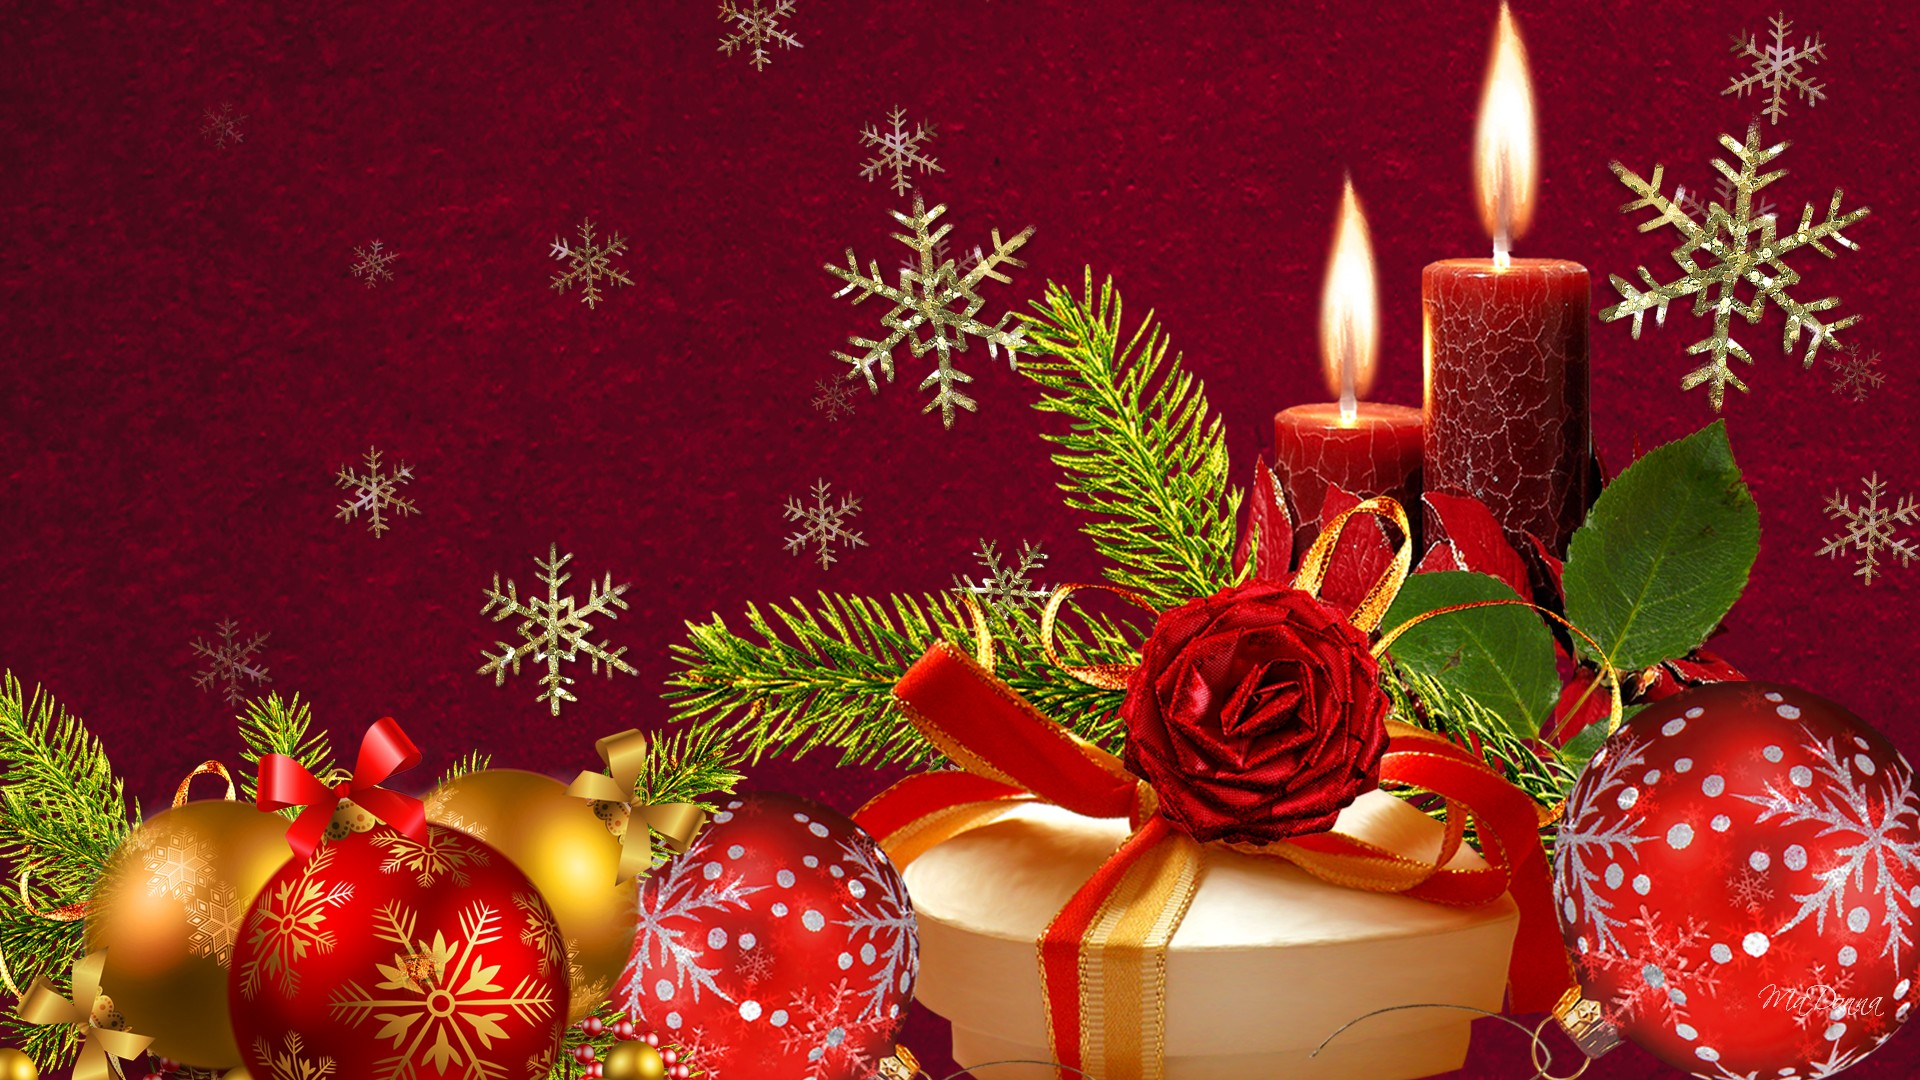 Red and Green Christmas   Backgrounds Wallpapers Pictures Pics 1920x1080